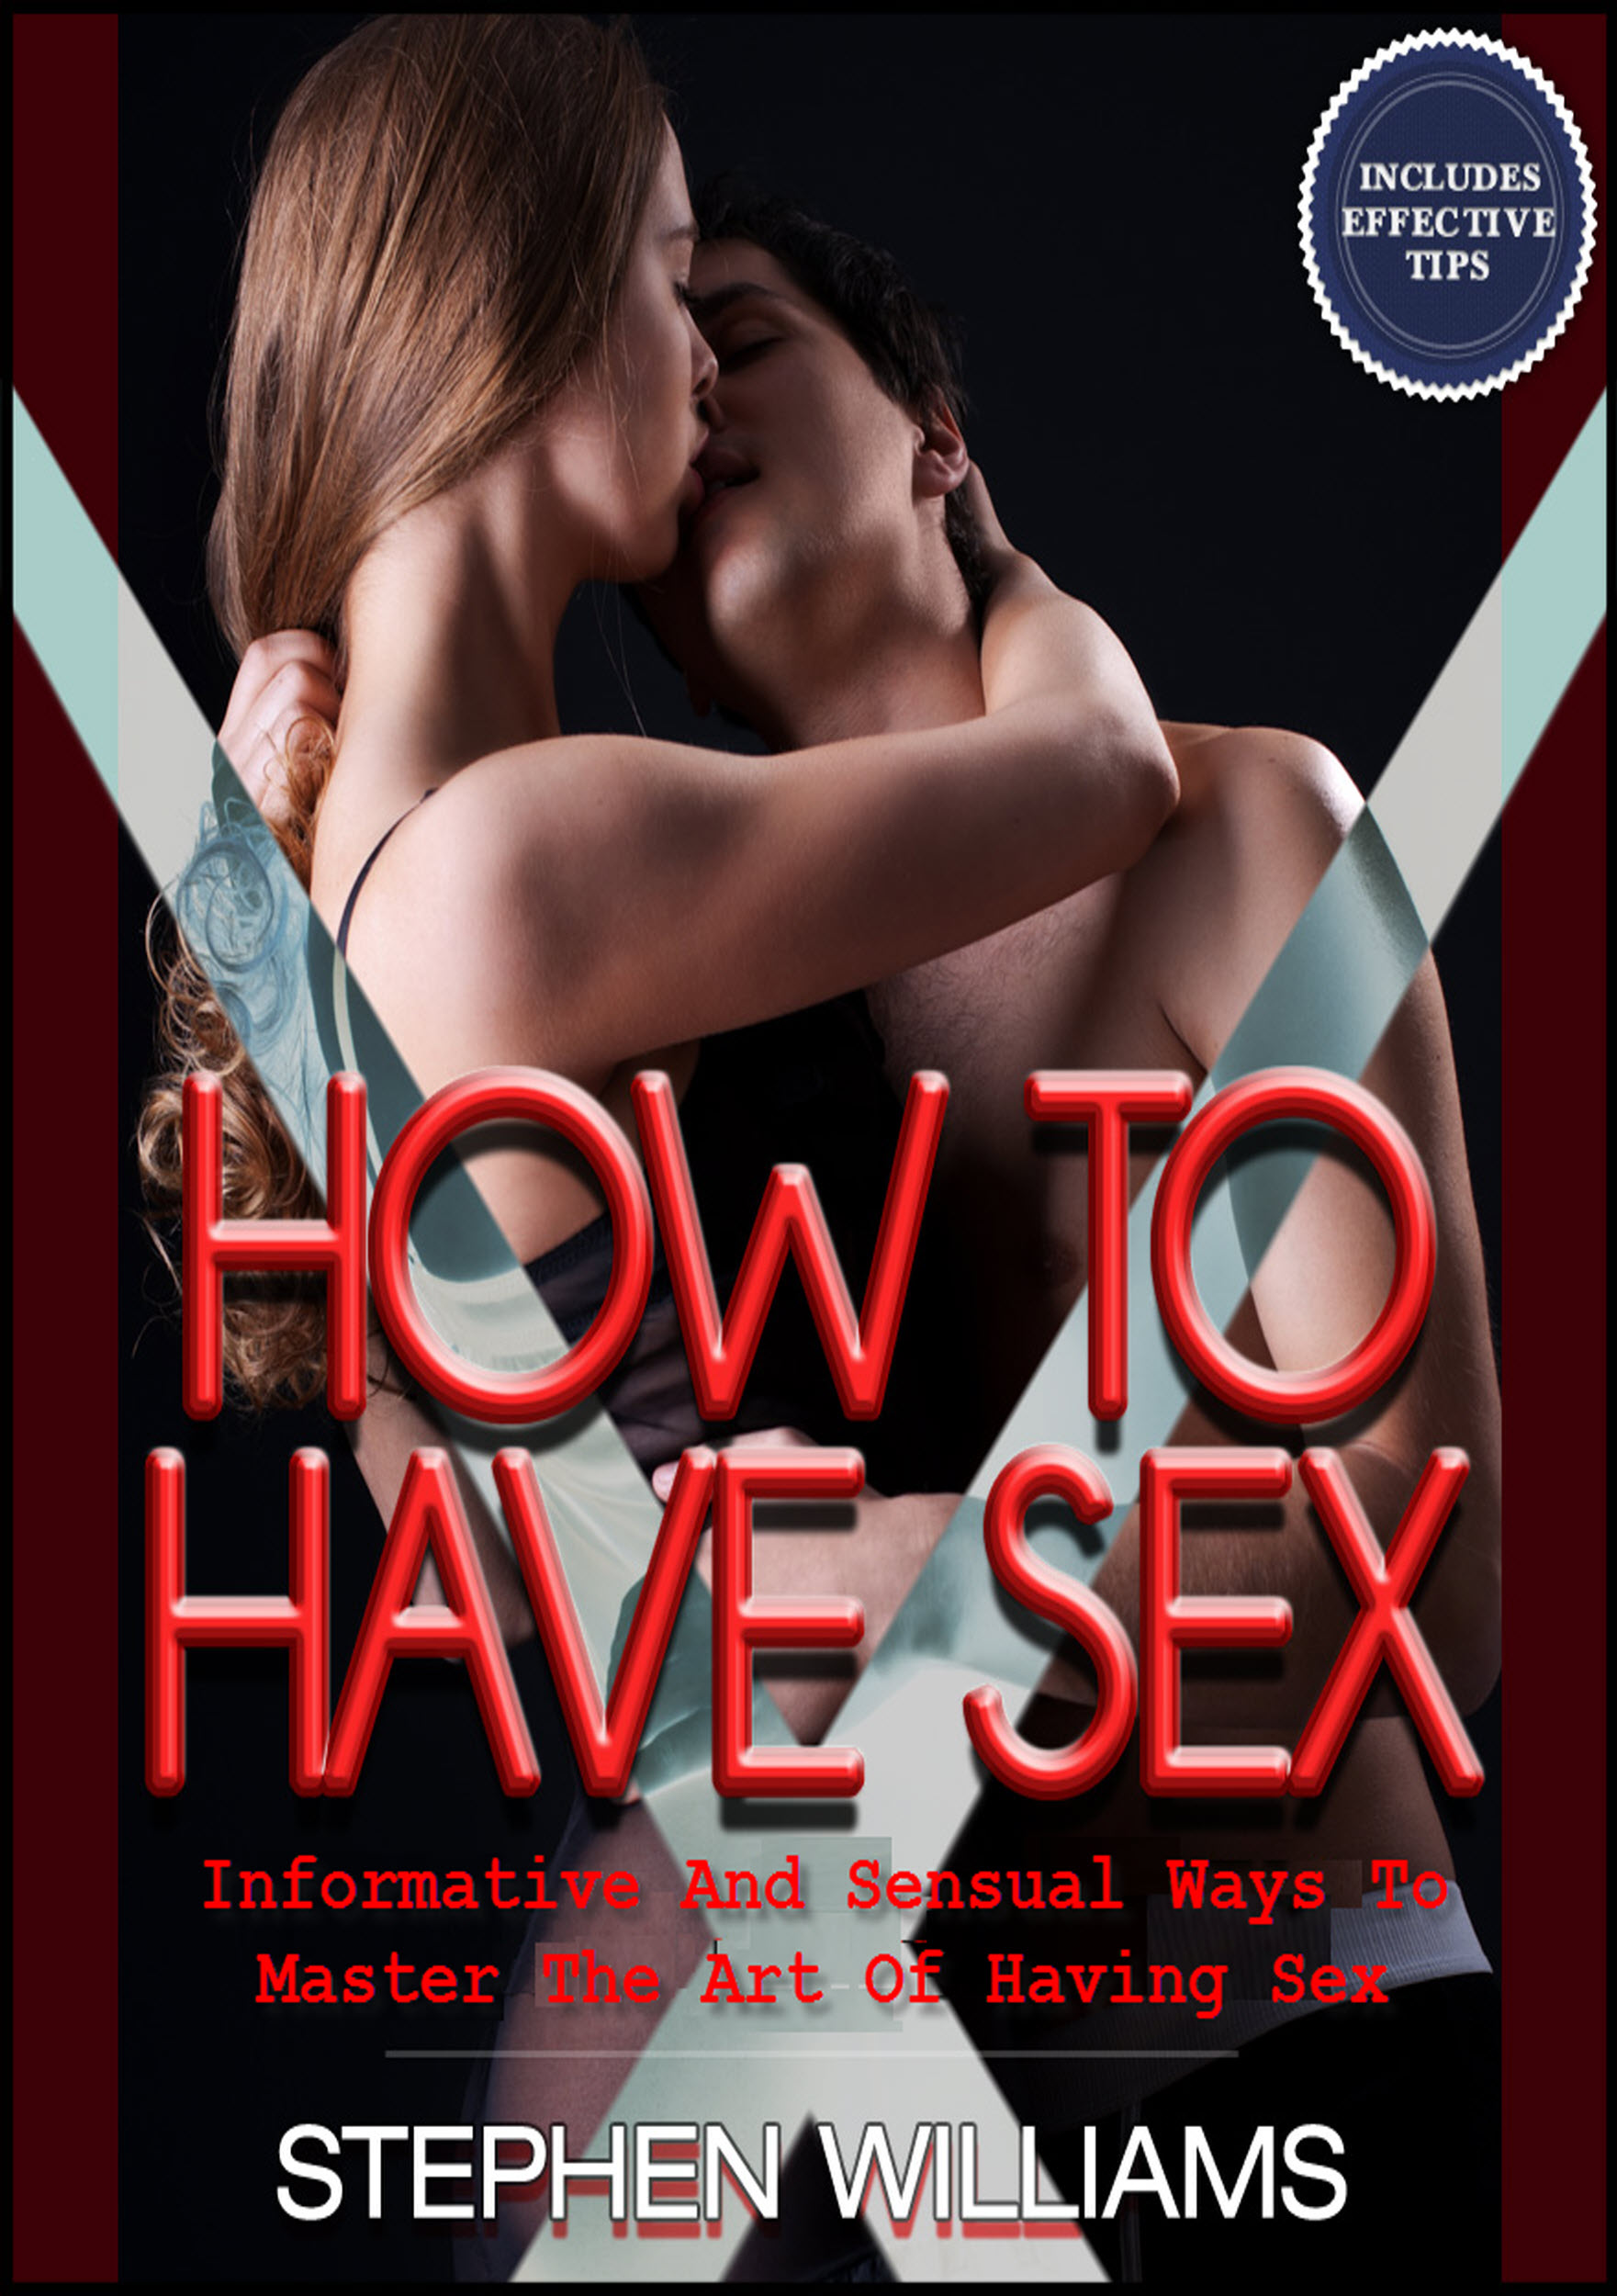 the art of having sex